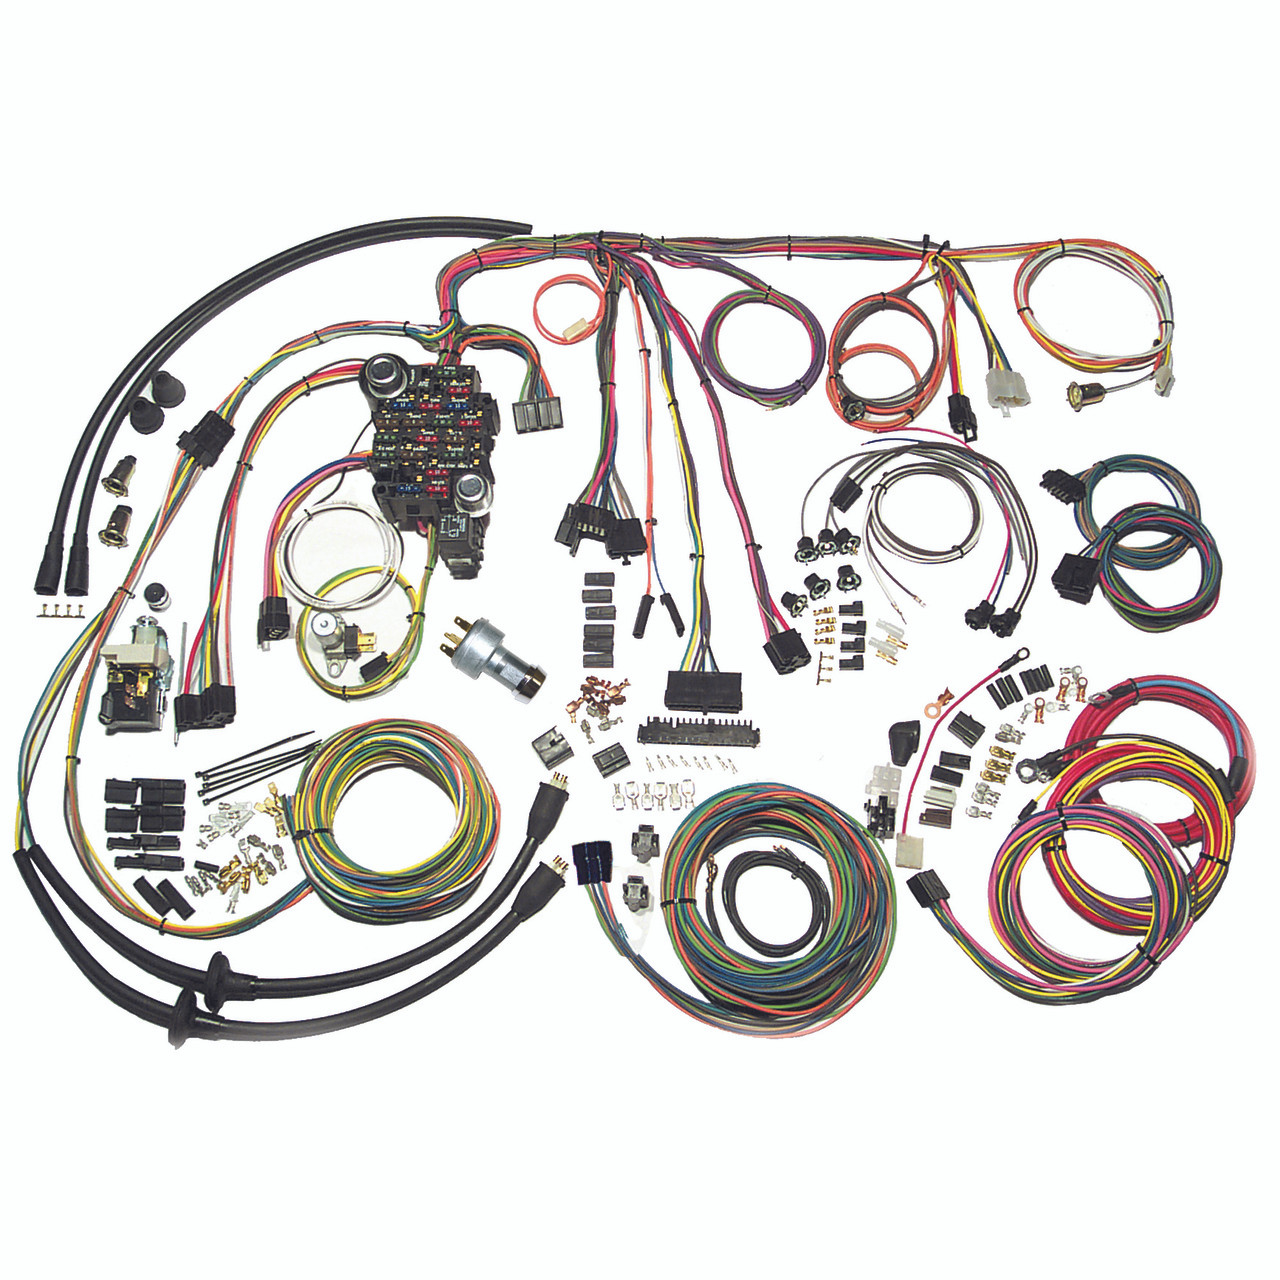 small resolution of american autowire 1957 chevrolet car classic update complete wiring kit ame 500434